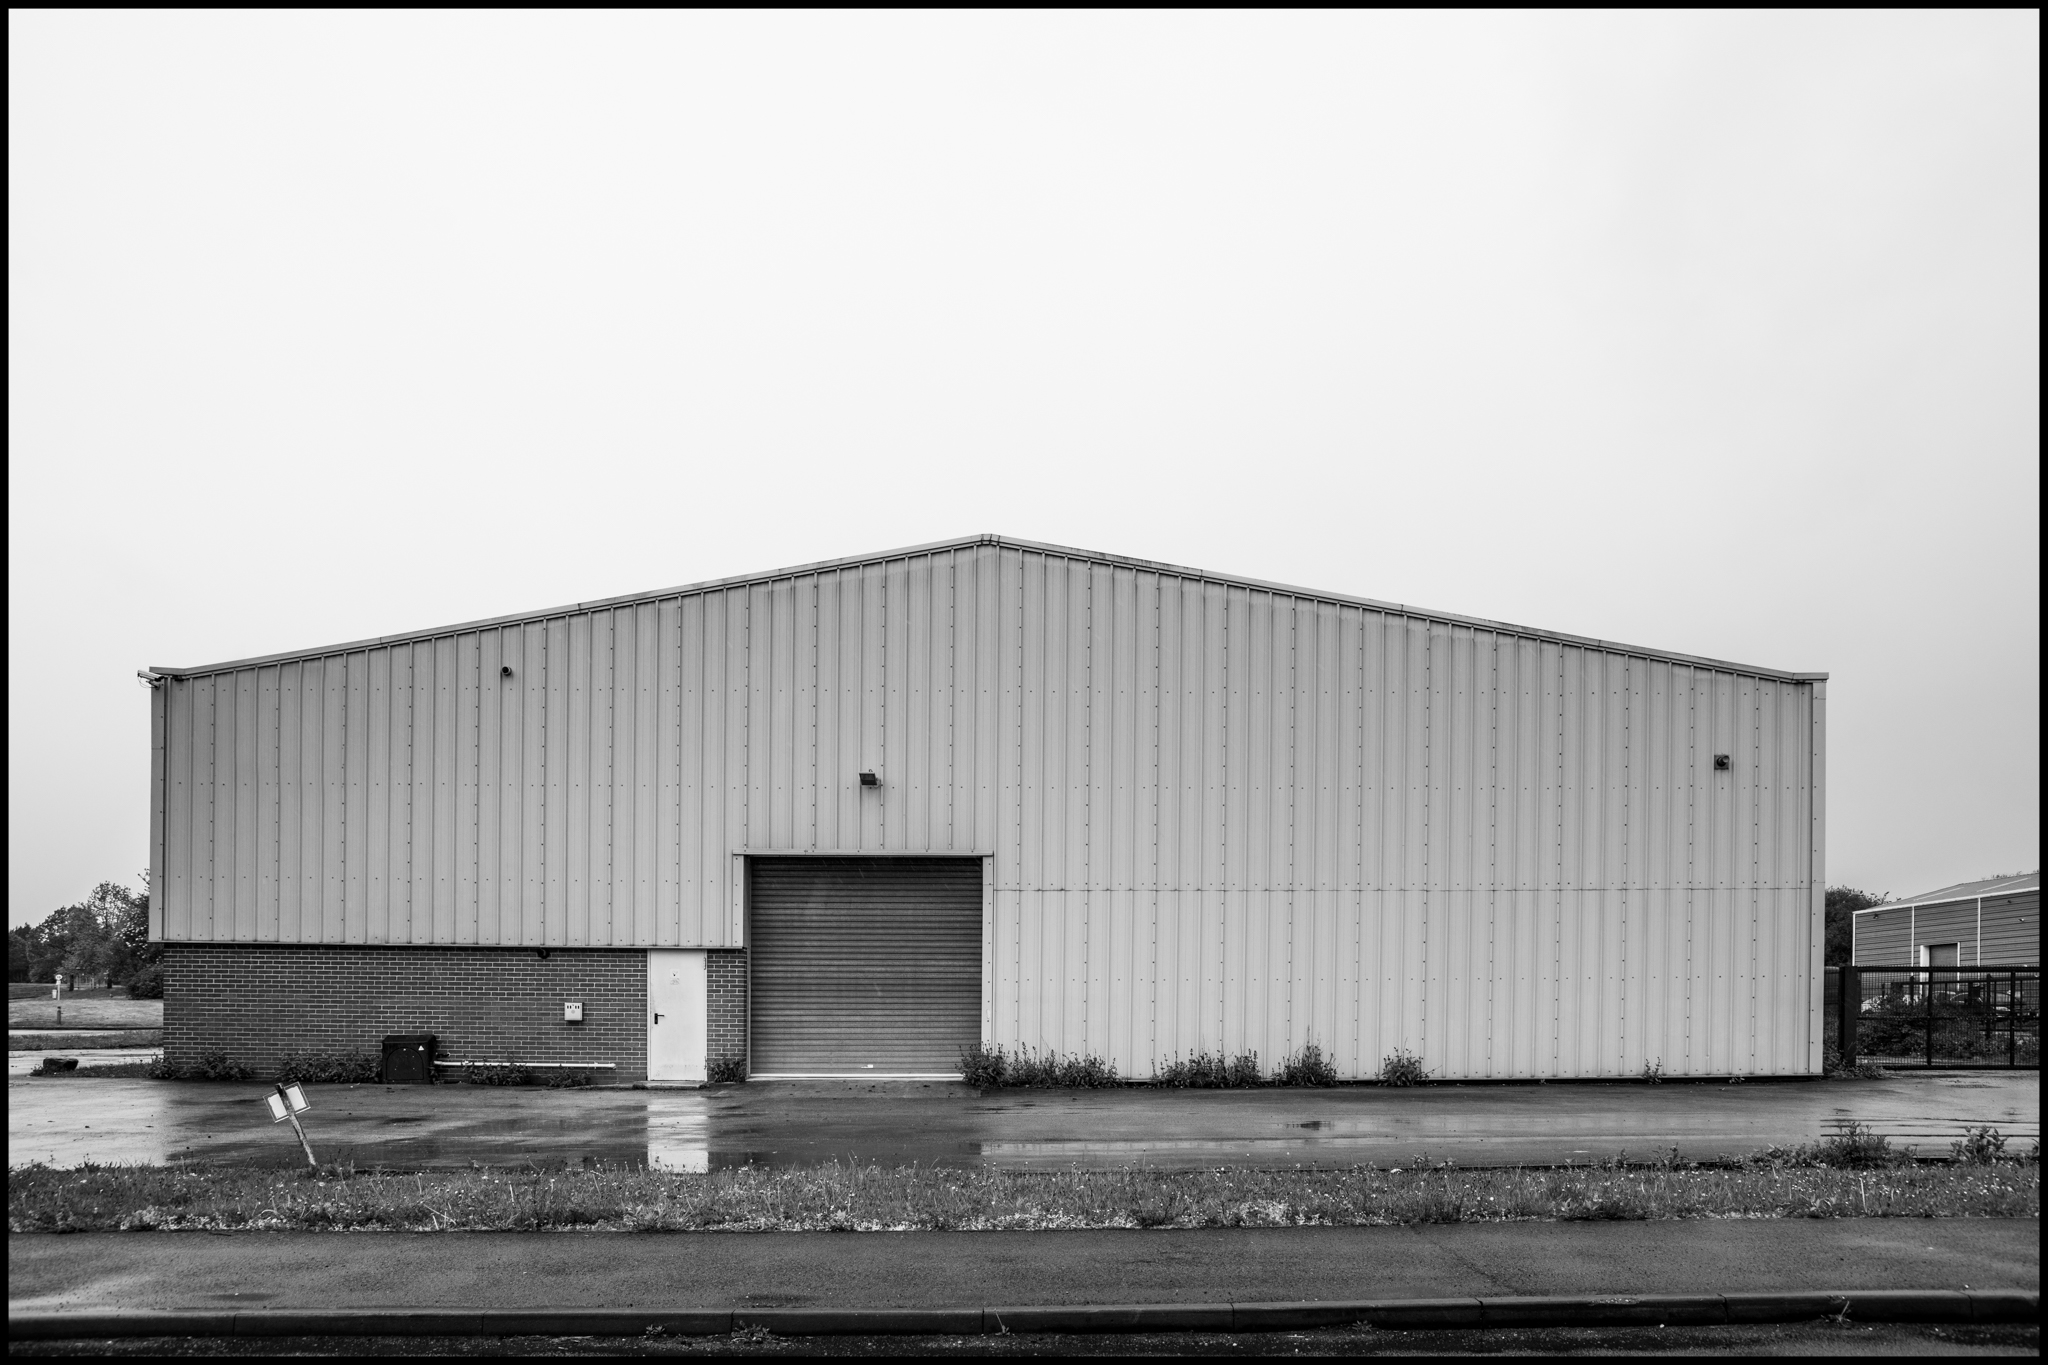 1 May 2019 - Factory Building #1, Wrexham Wales